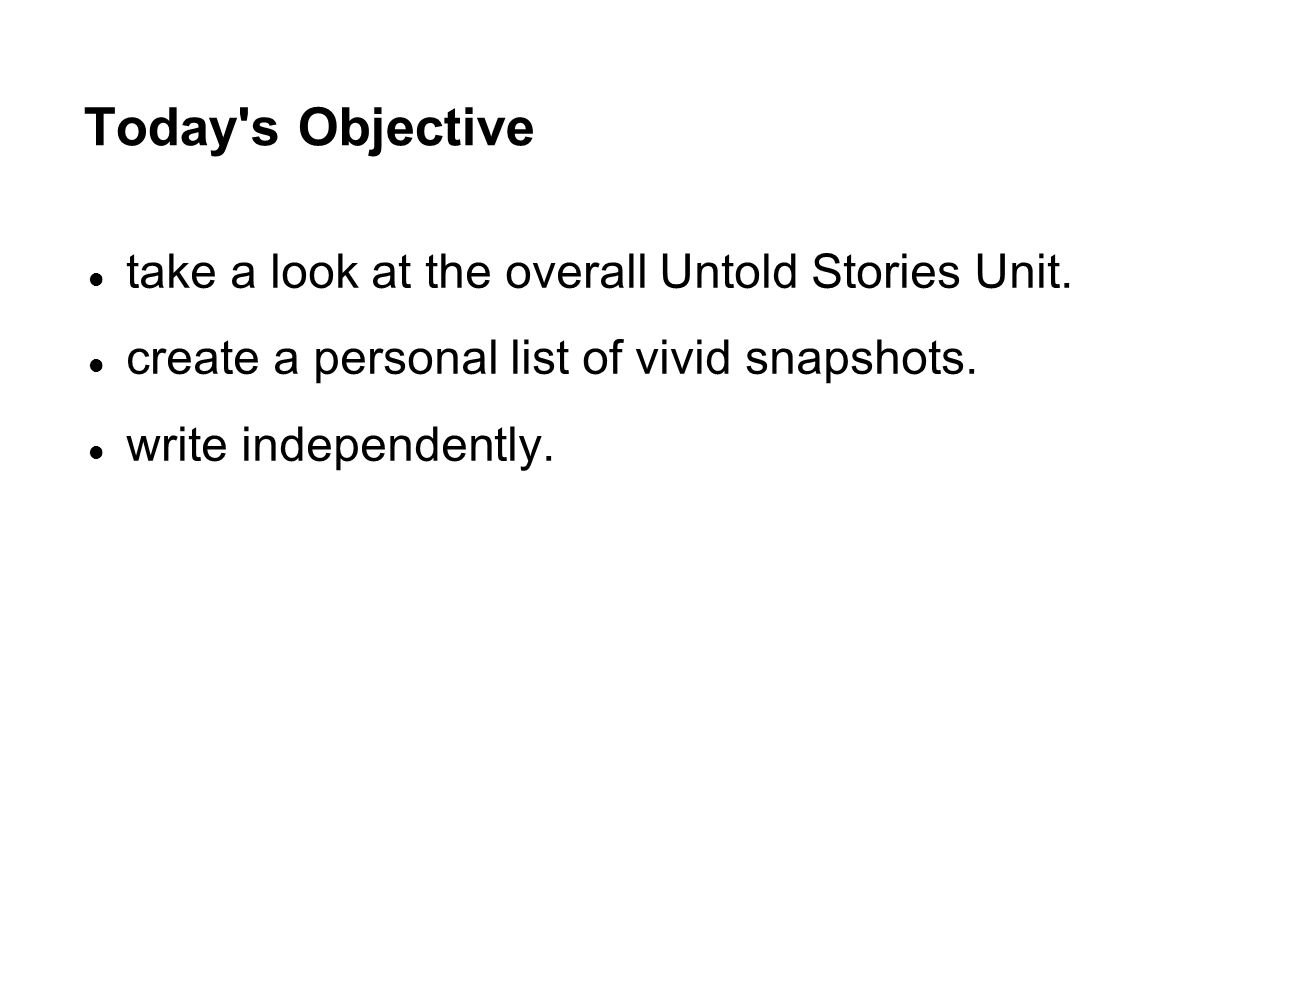 Today's Objective take a look at the overall Untold Stories Unit. create a personal list of vivid snapshots. write independently.